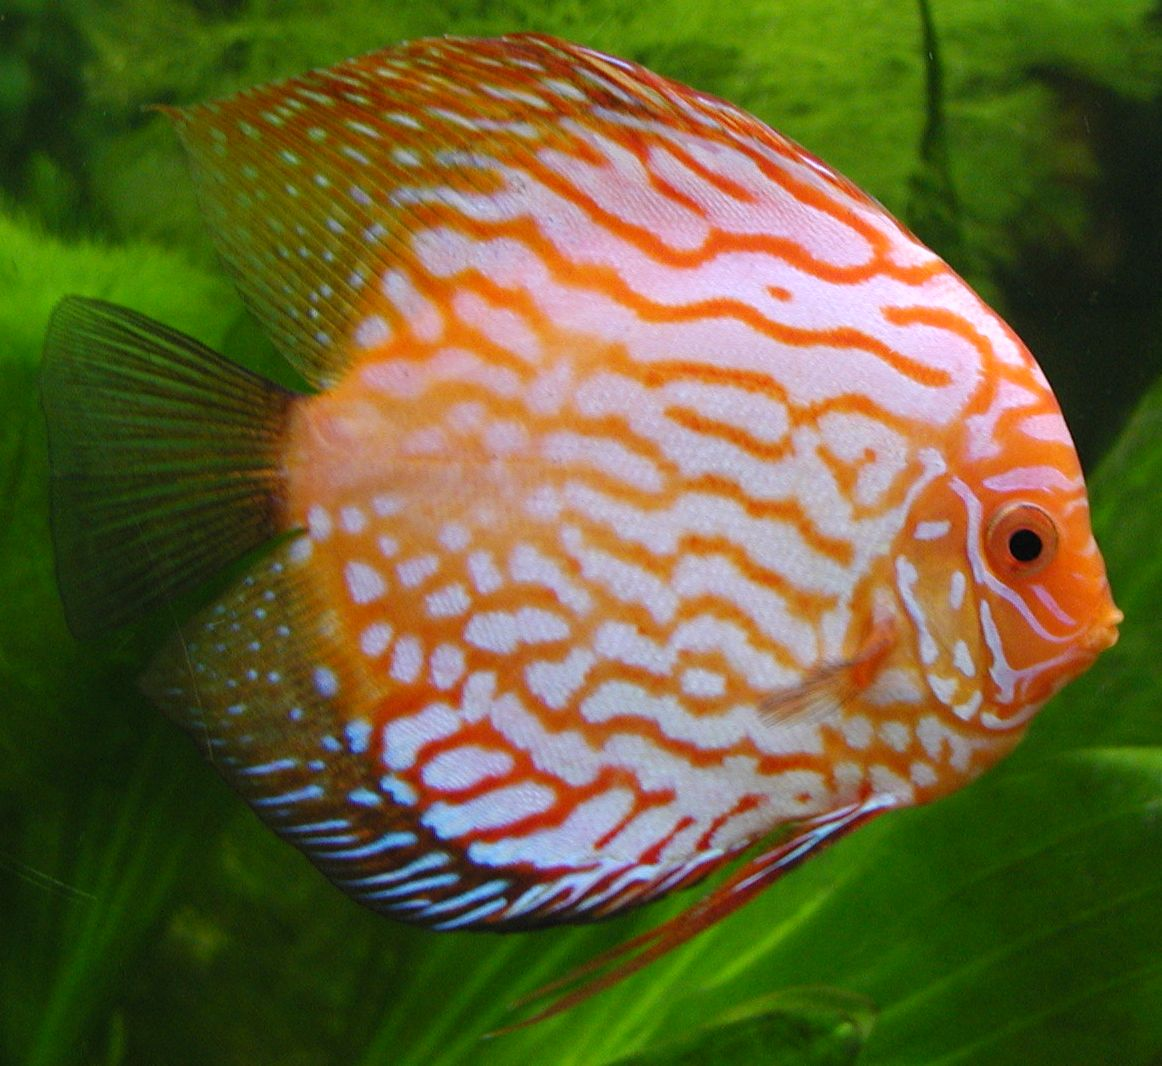 RubinRedPeacock in addition Guzer   pictures record catfish besides Do Oscar Fish Have Teeth further 0Cd5Ea 5Fic further Fish That Looks Like A Dog. on oscar cichlid facts